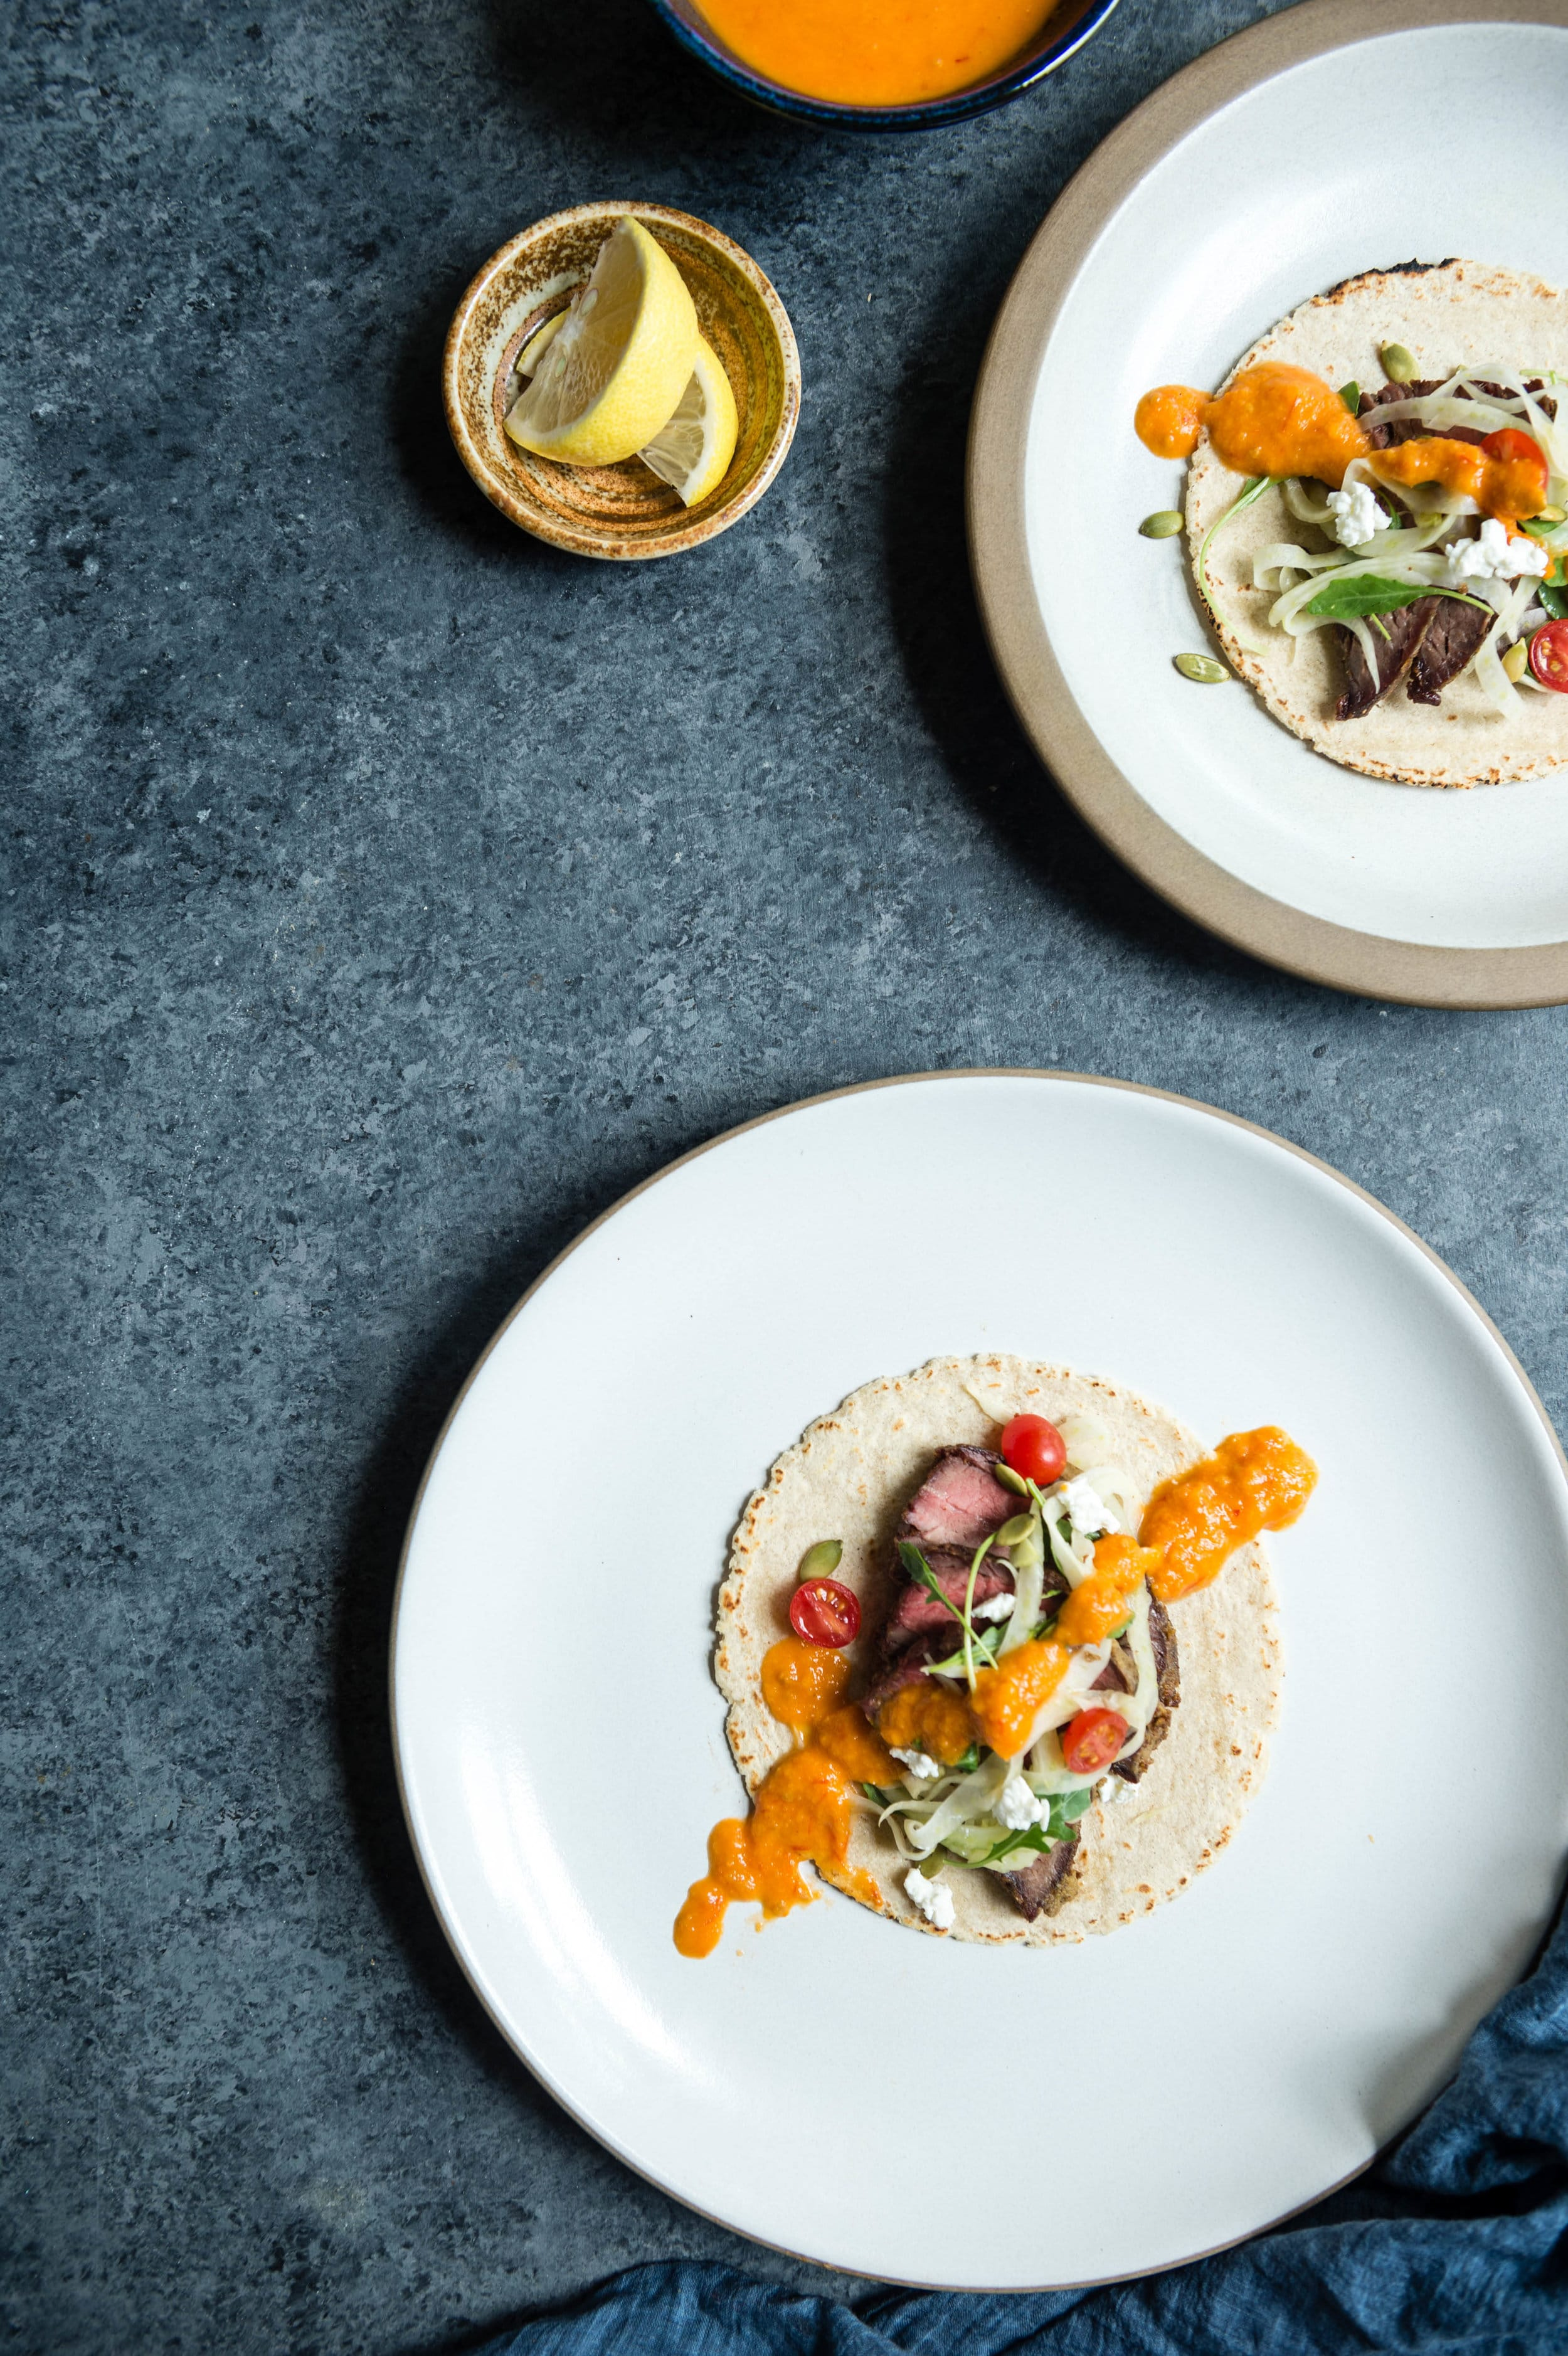 Real Food Recipes with Laurel Street Kitchen: Sous Vide Flank Steak Tacos with Fennel Slaw and Roasted Red Pepper Salsa